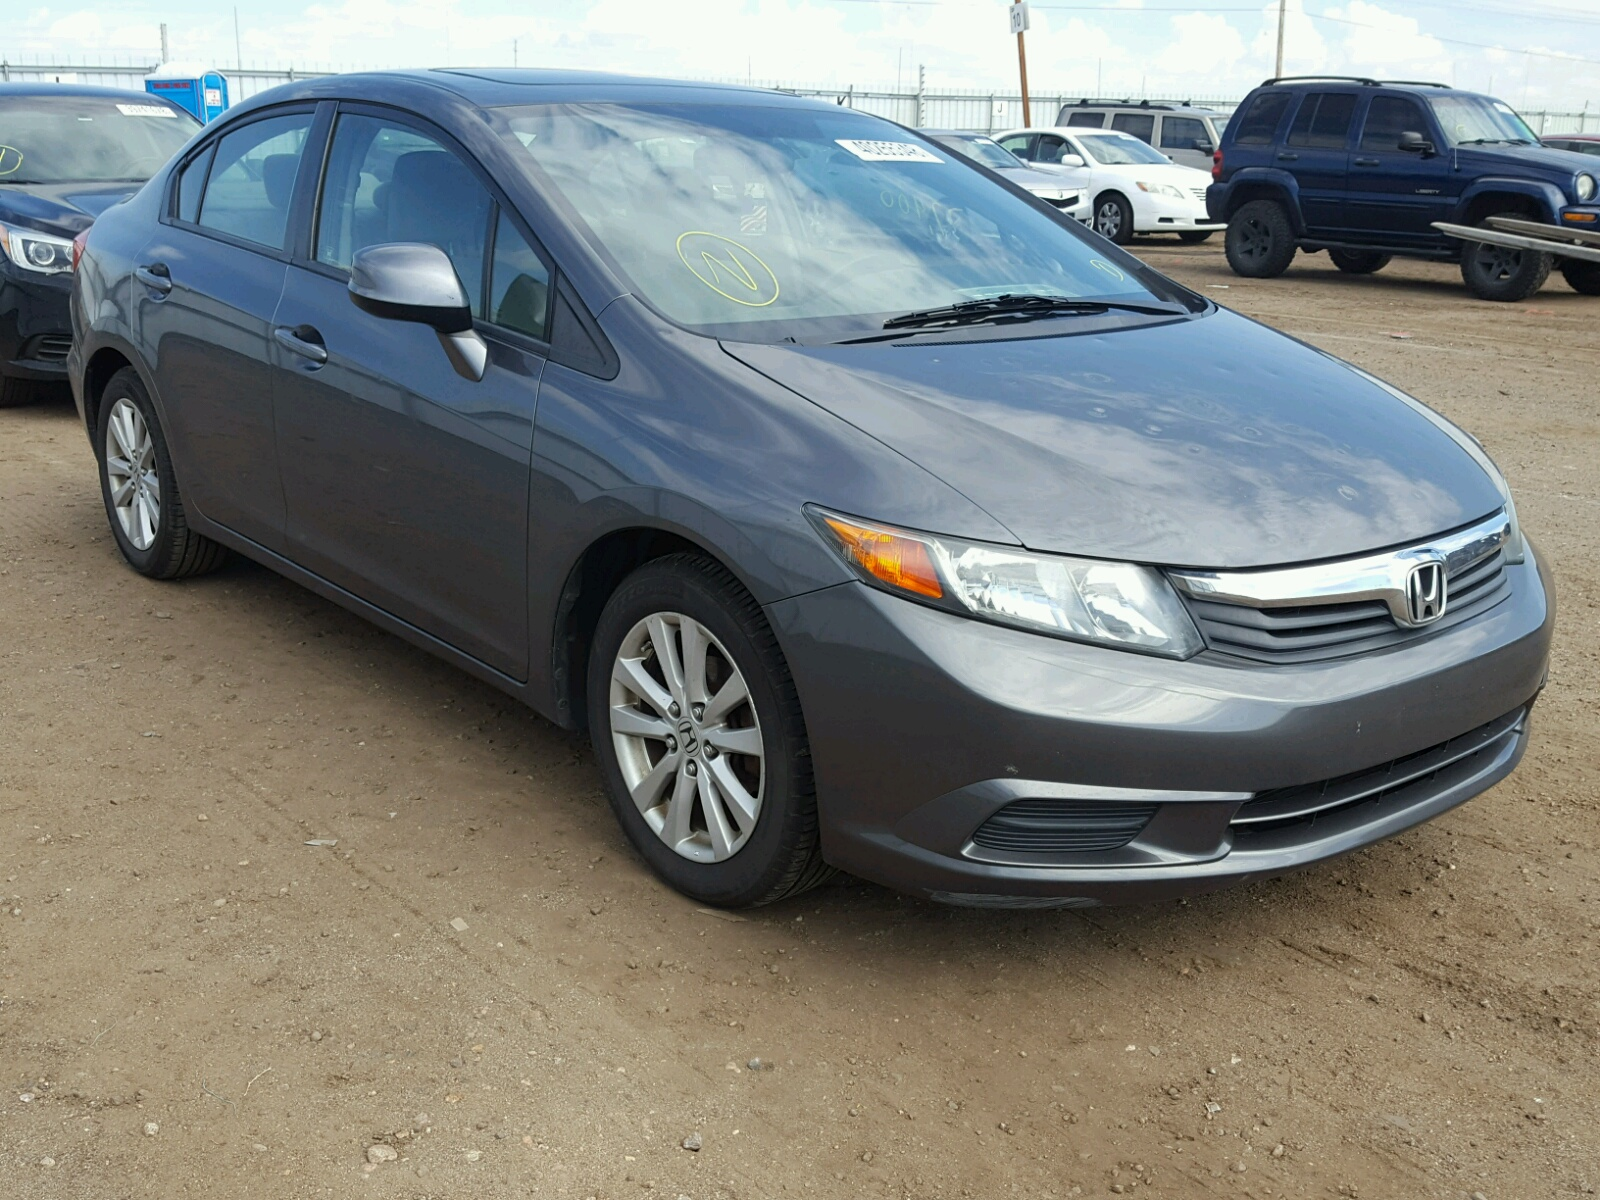 2012 Honda Civic EX for sale at Copart Brighton CO Lot